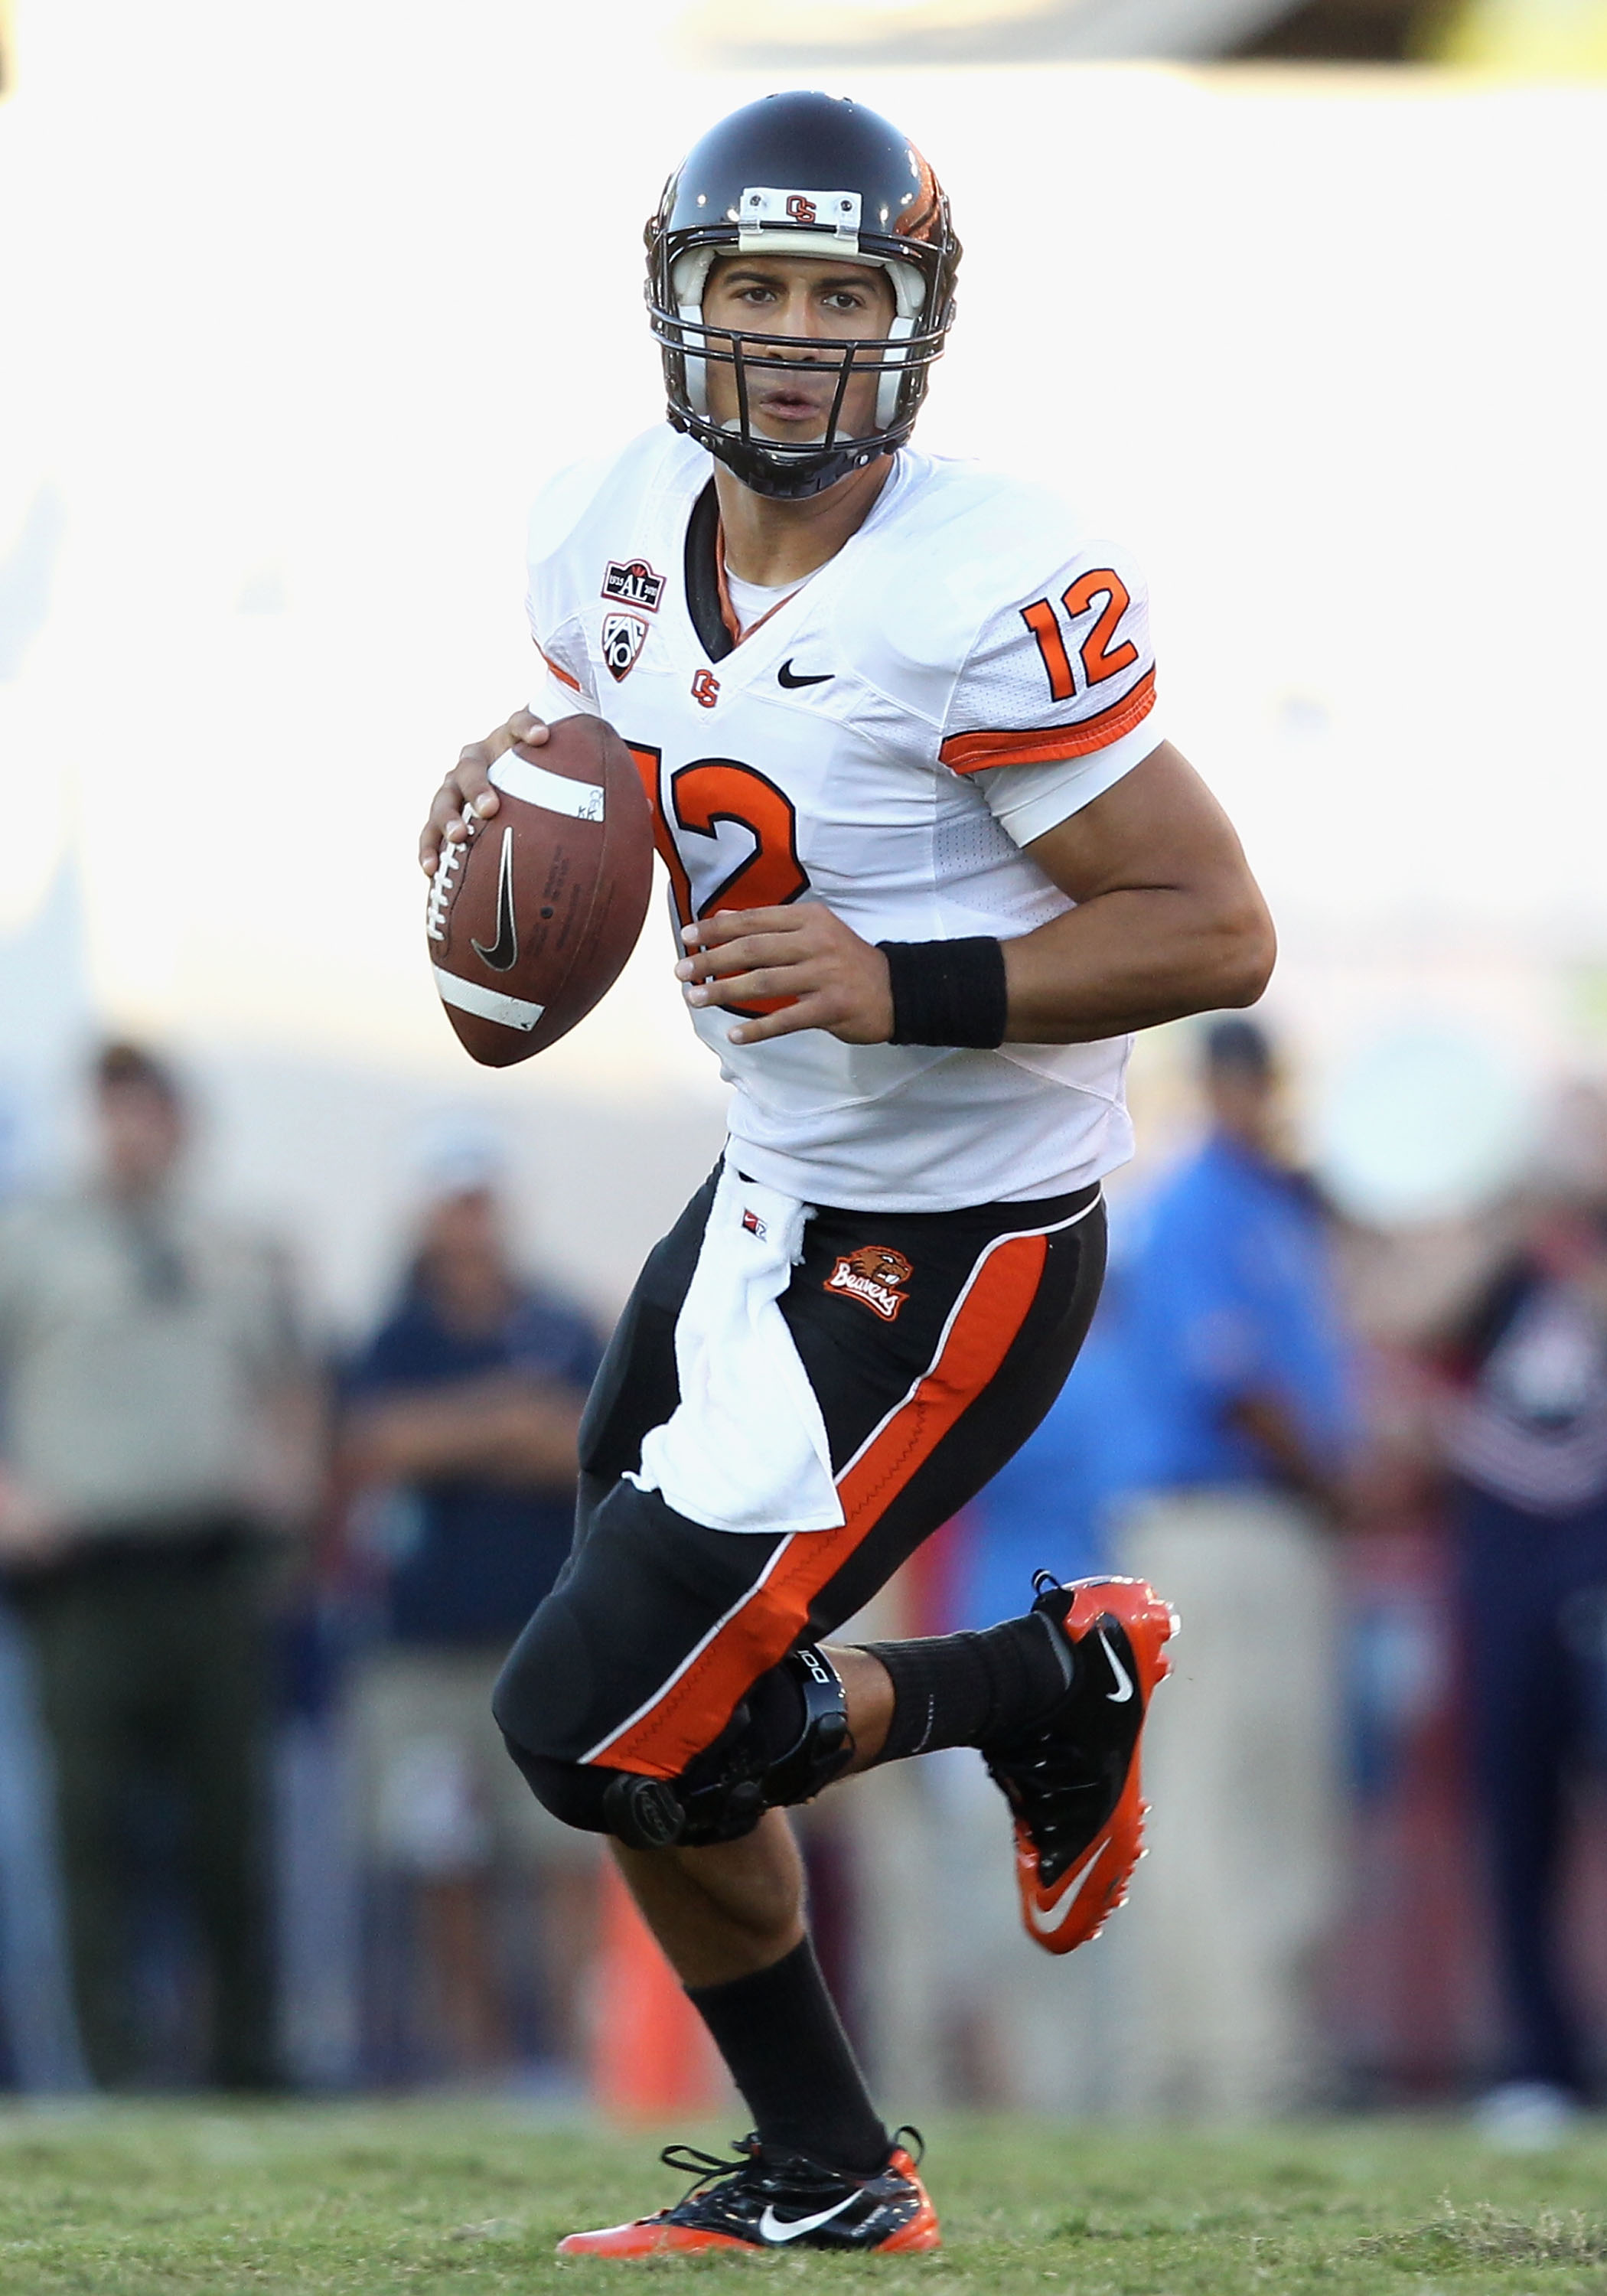 TUCSON, AZ - OCTOBER 09:  Quarterback Ryan Katz #12 of the Oregon State Beavers drops back to pass during the college football game against the Arizona Wildcats at Arizona Stadium on October 9, 2010 in Tucson, Arizona.  The Beavers defeated the Wildcats 2